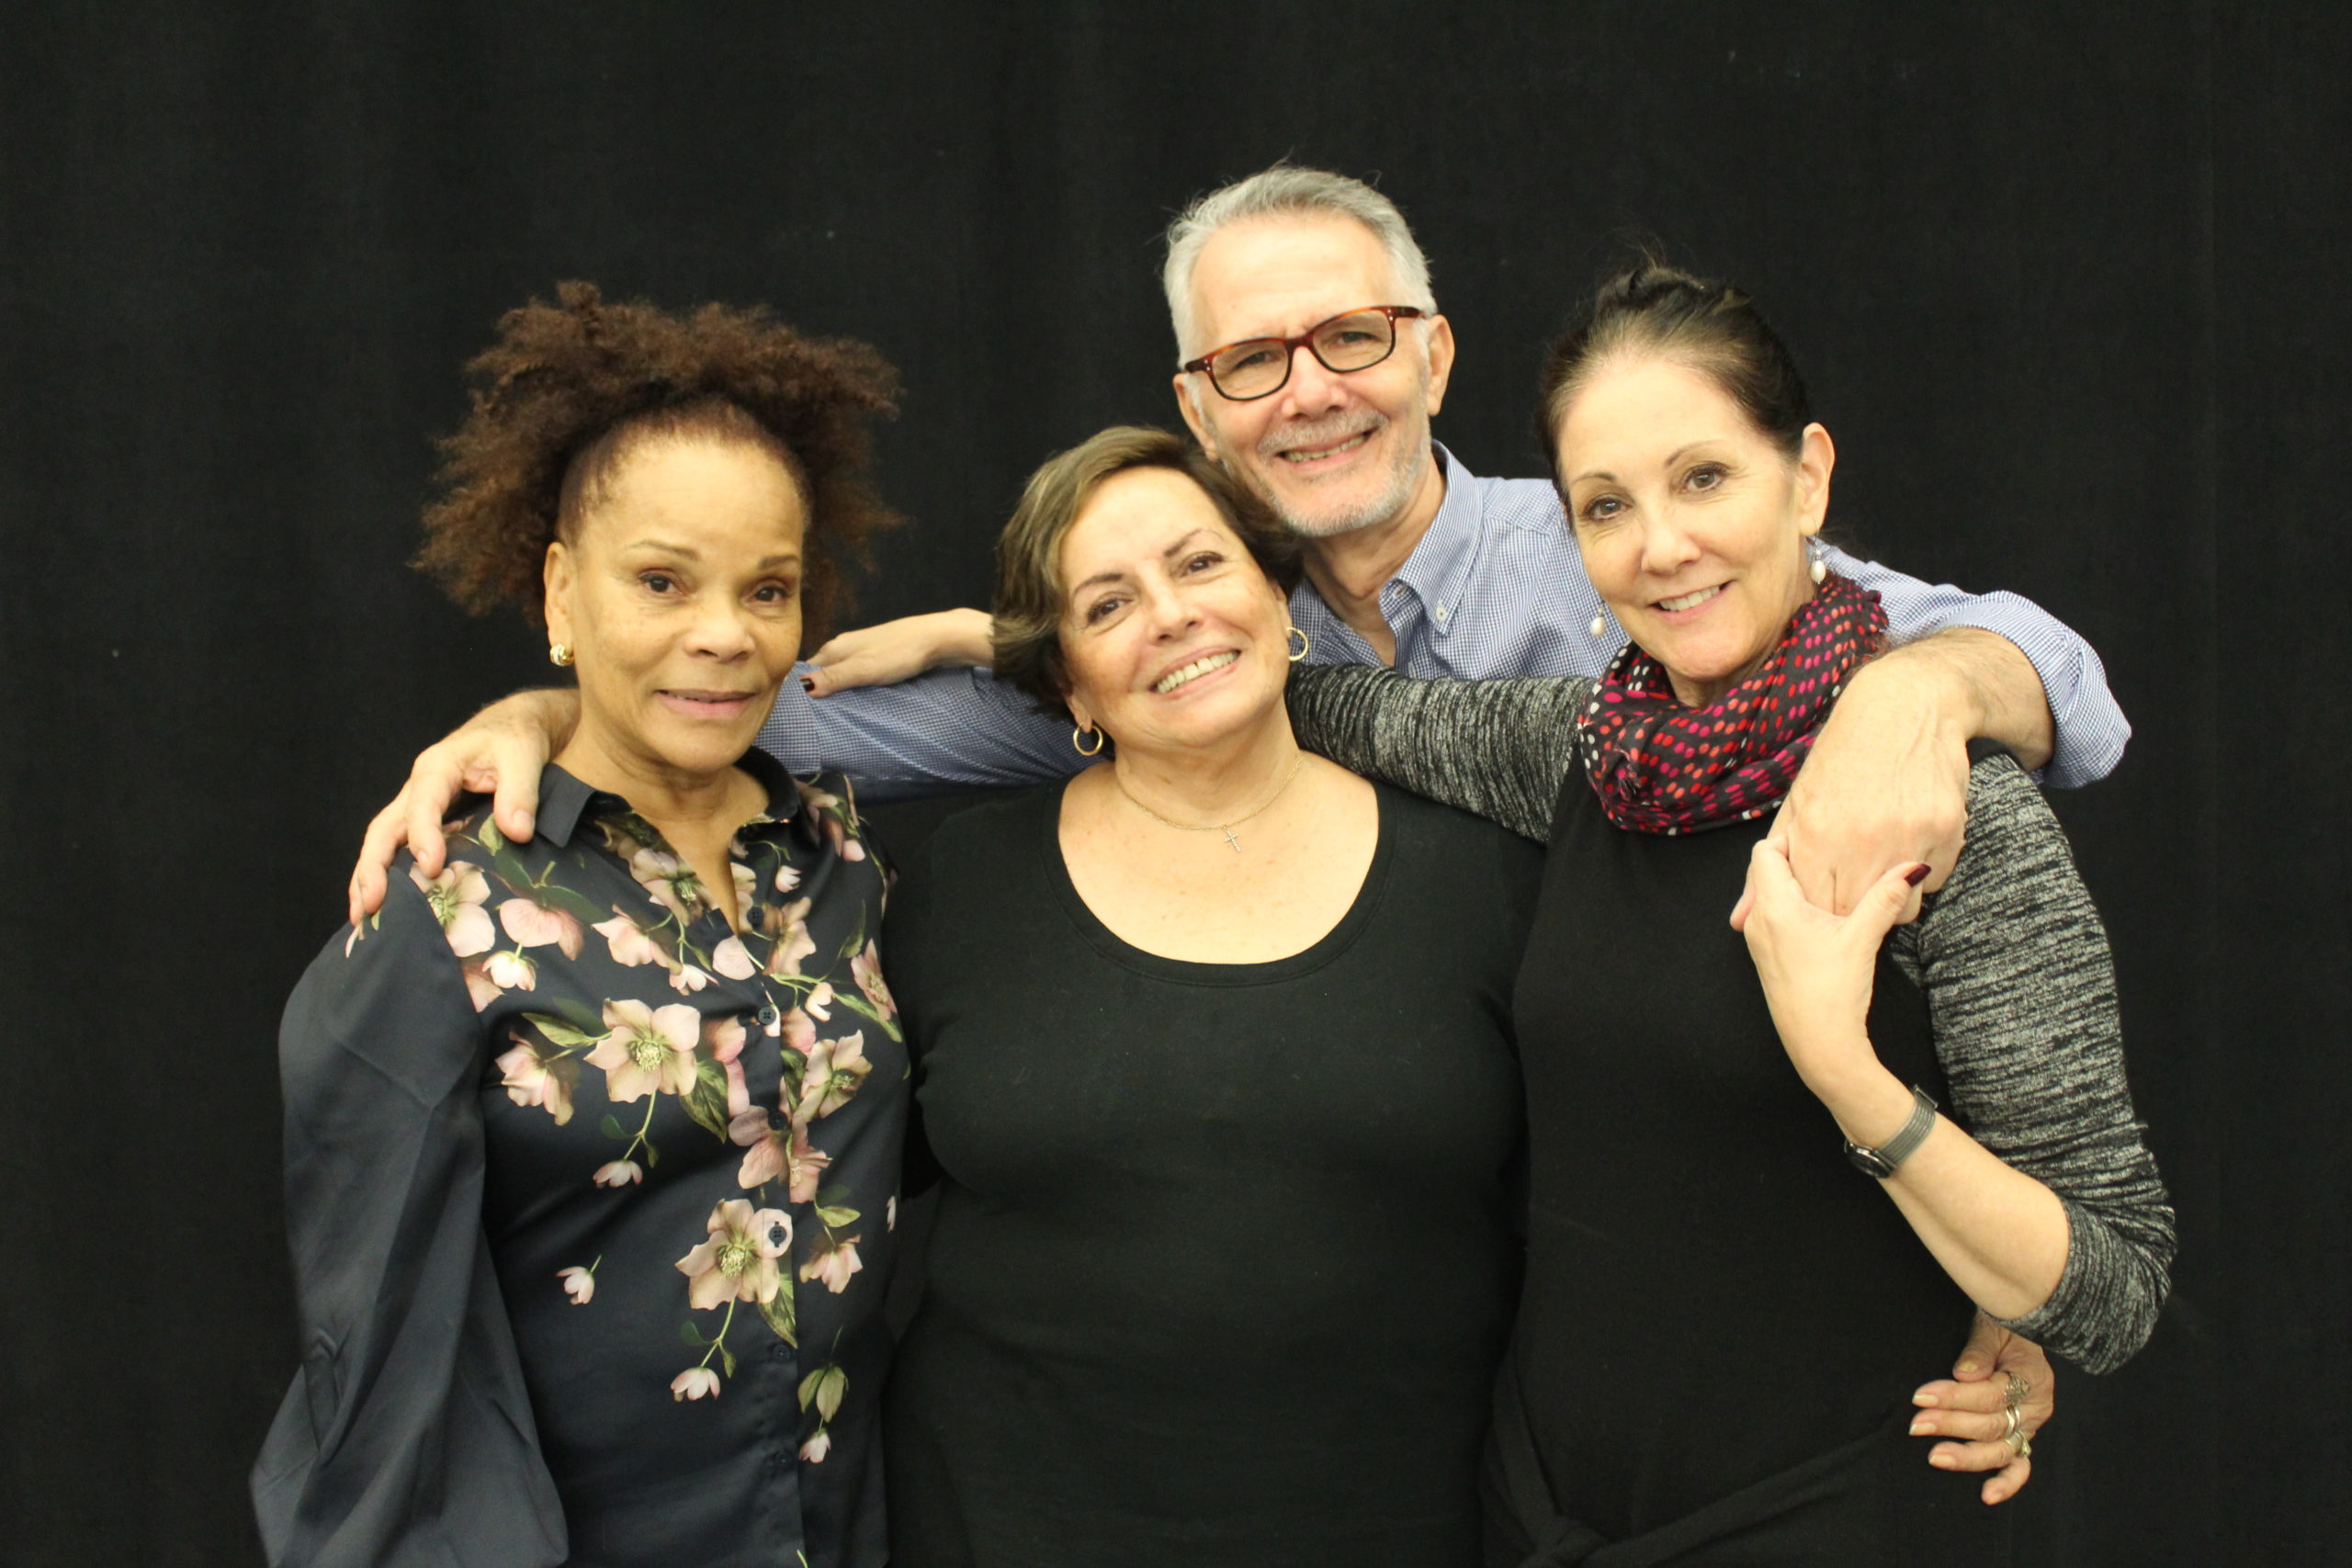 Caridad Martinez, Laura Alonso, Rodolfo Castellanos Cardoso and Cynthia Harvey. Photo by Emilia Stuart.